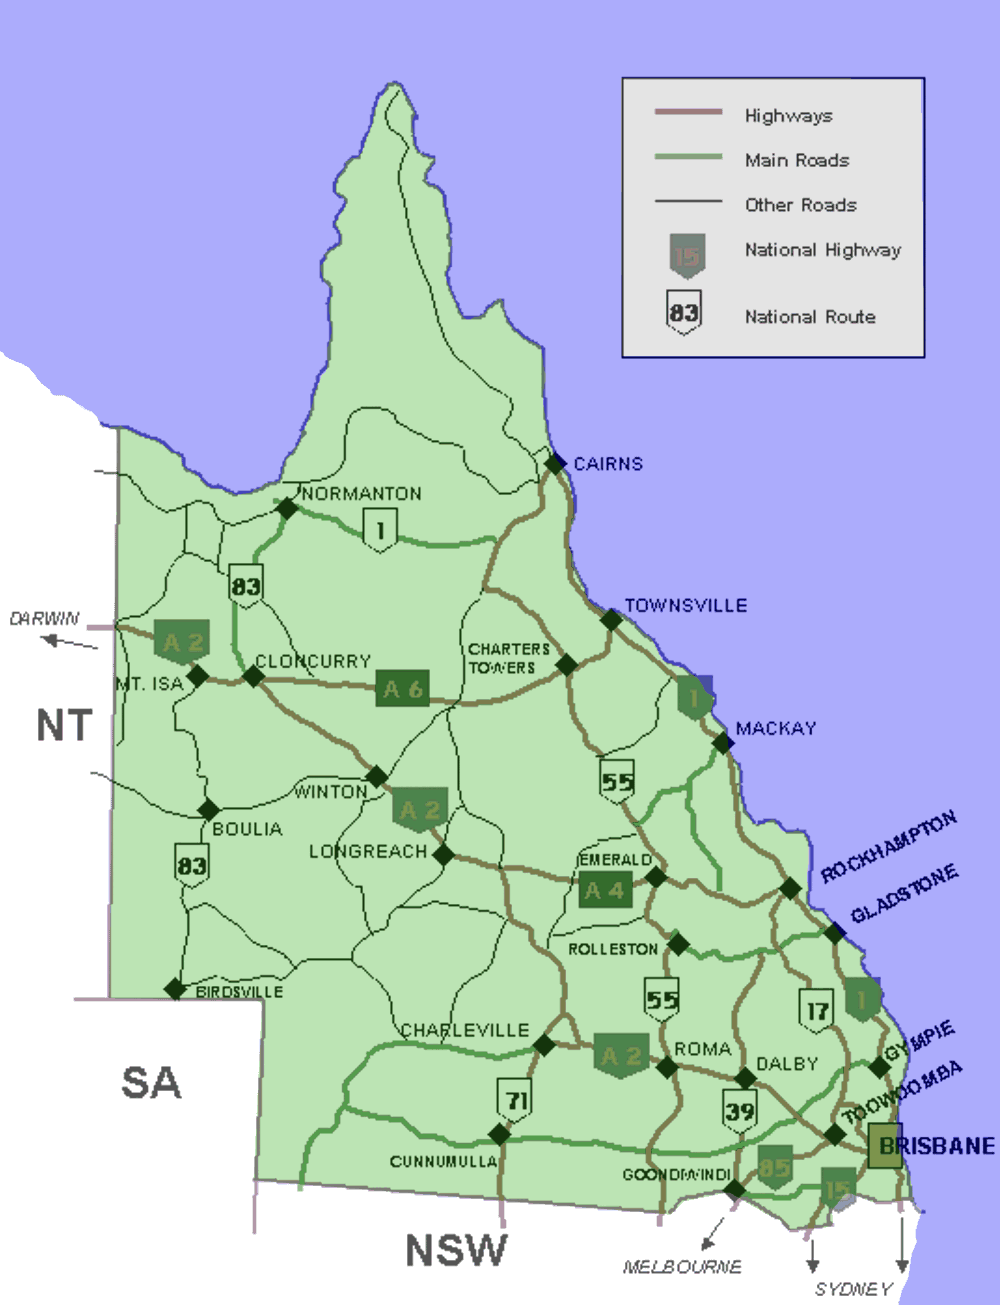 Map of Cairns, Australia from Wikimedia